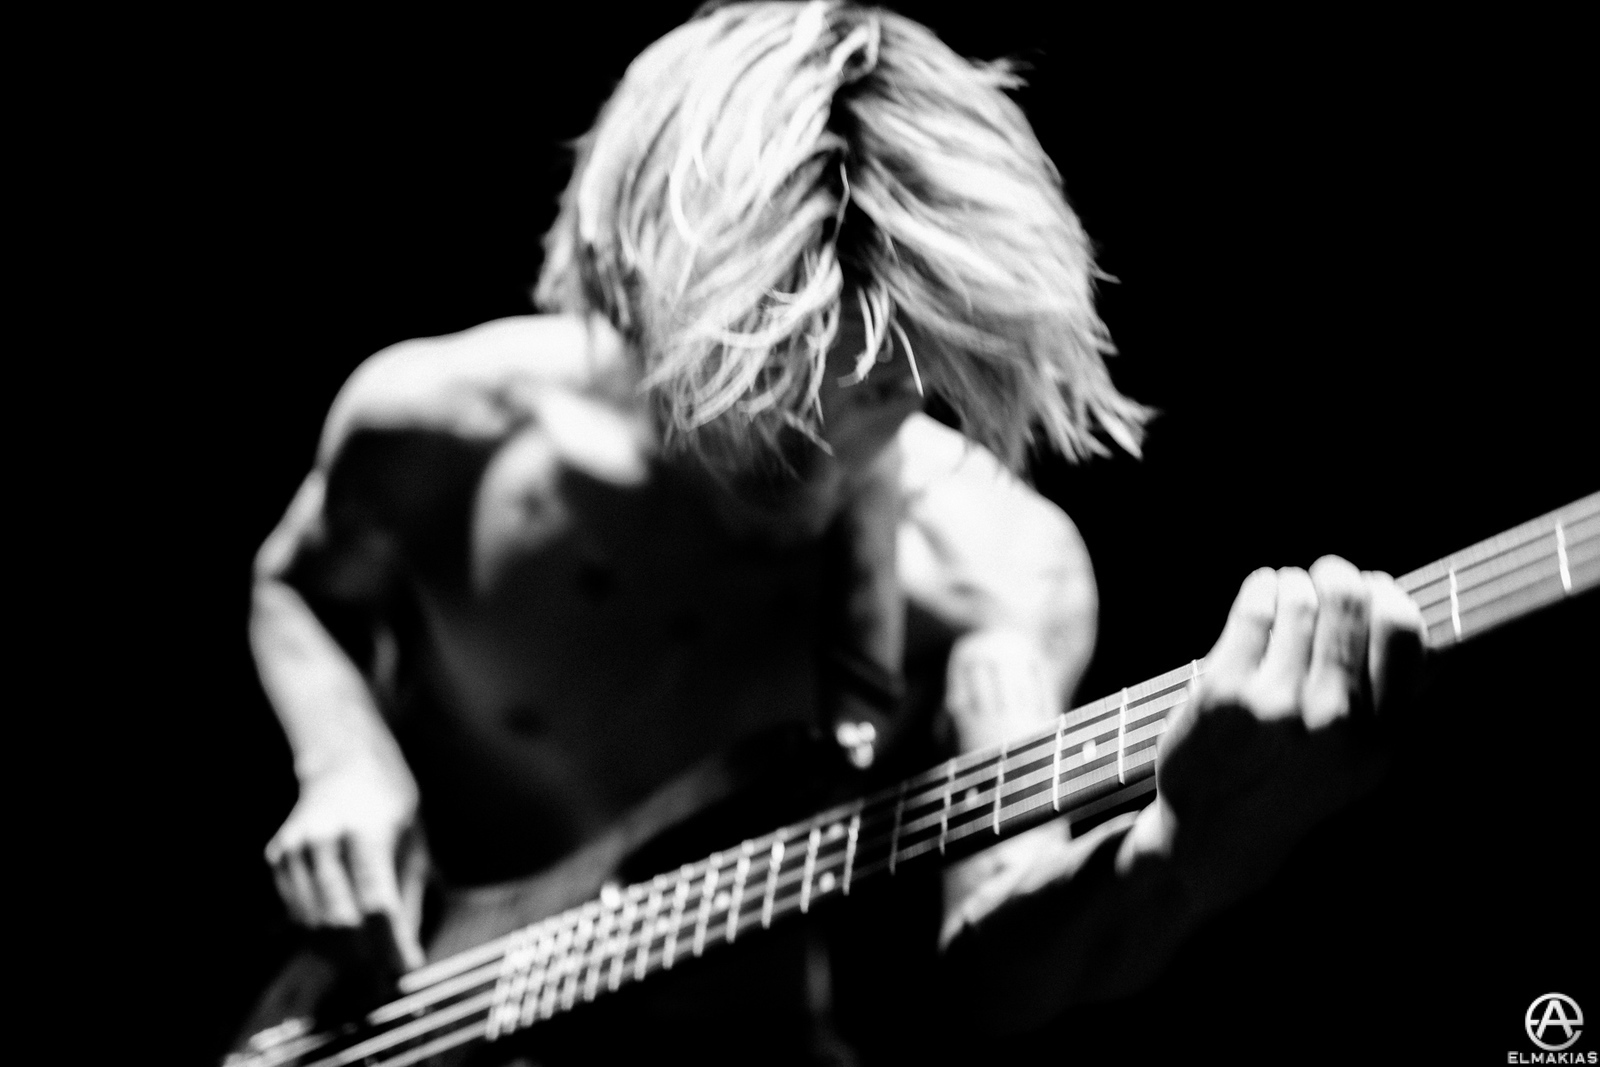 Ryota Kohama of ONE OK ROCK